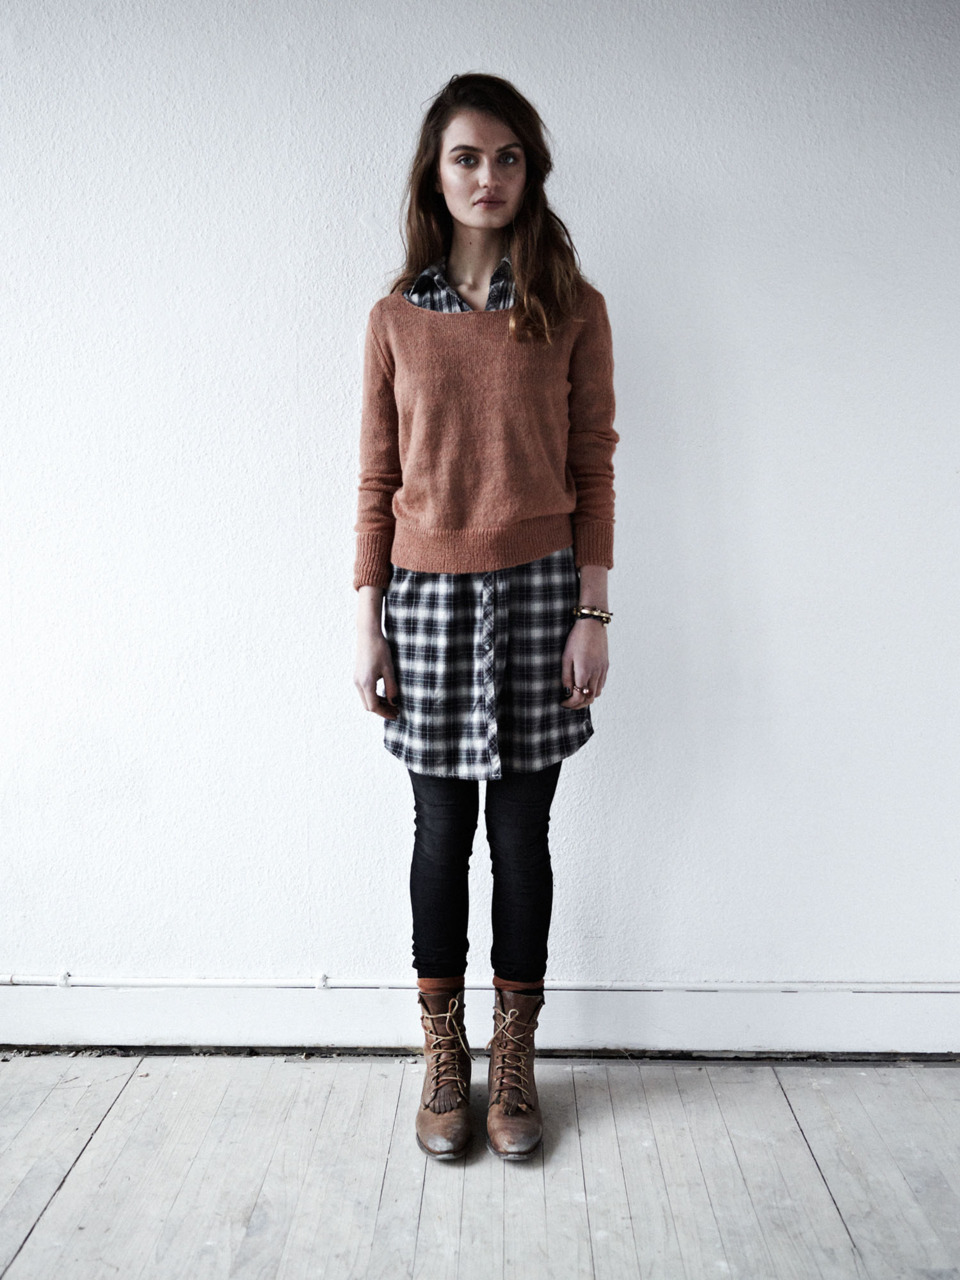 4e7ac2434 Layered dress and sweater combination from Annaelsaa.tumblr.com ...